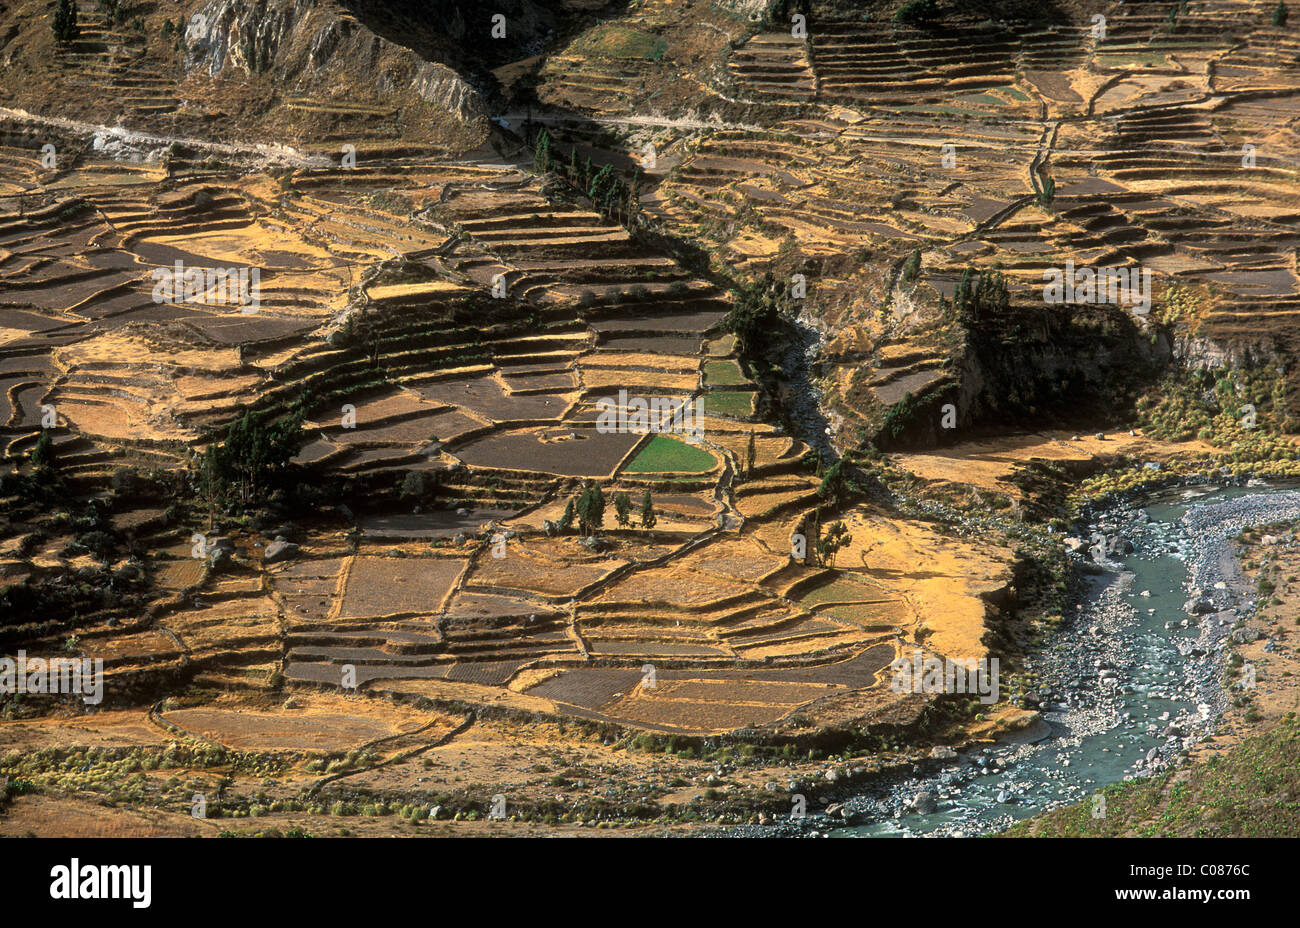 Terraced fields in the Colca canyon at an altitude of 3450 m, Peru, South America - Stock Image